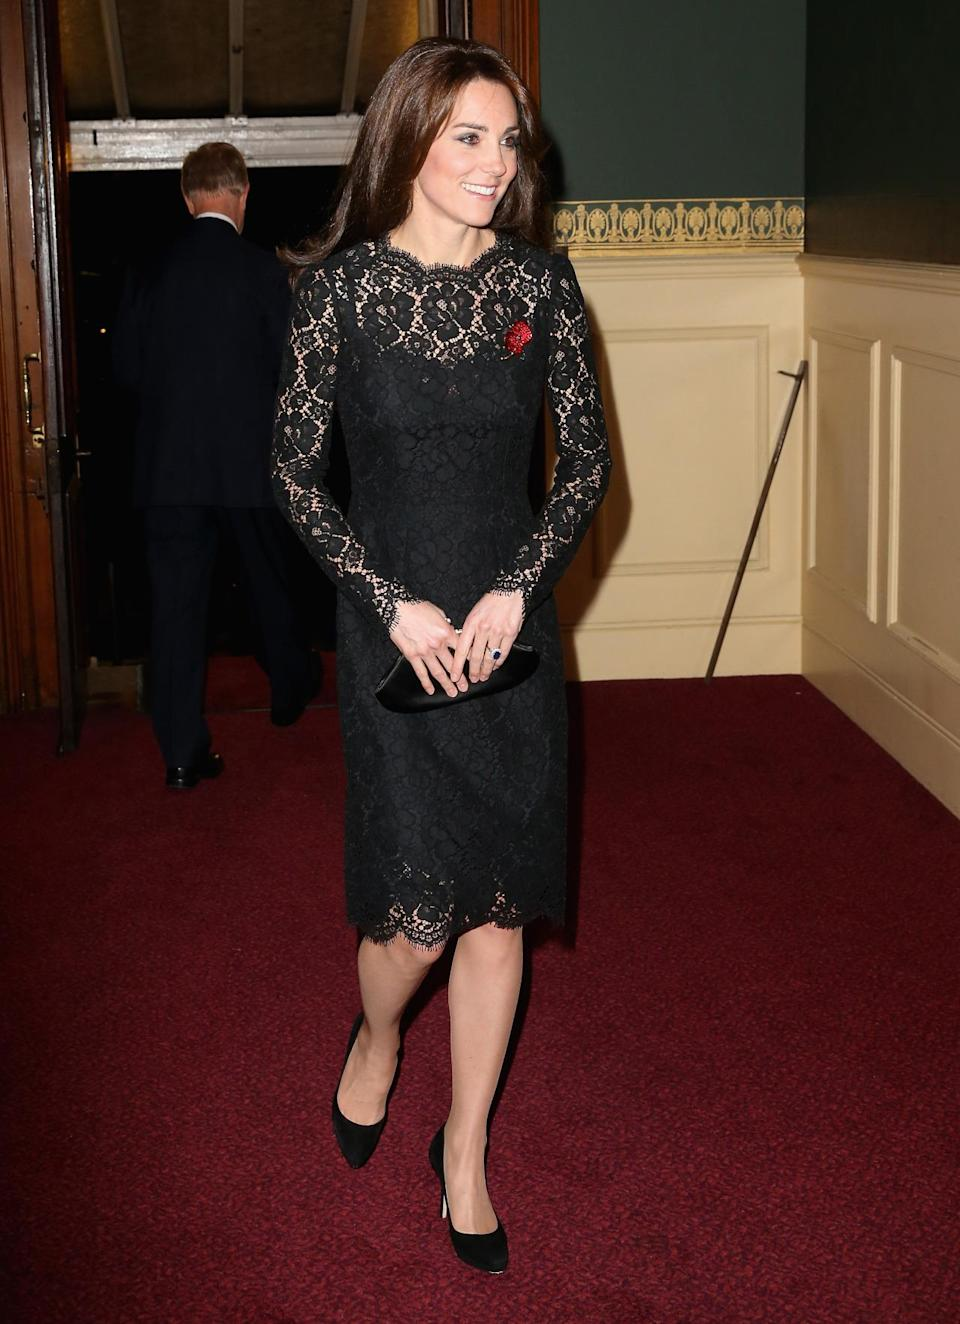 <p>Kate opted for a full designer look for 2015's Festival of Remembrance. Wearing a black lace Dolce & Gabbana dress, the Duchess accessorised with an Anya Hindmarch clutch and black Jimmy Choo pumps.</p><p><i>[Photo: PA]</i></p>